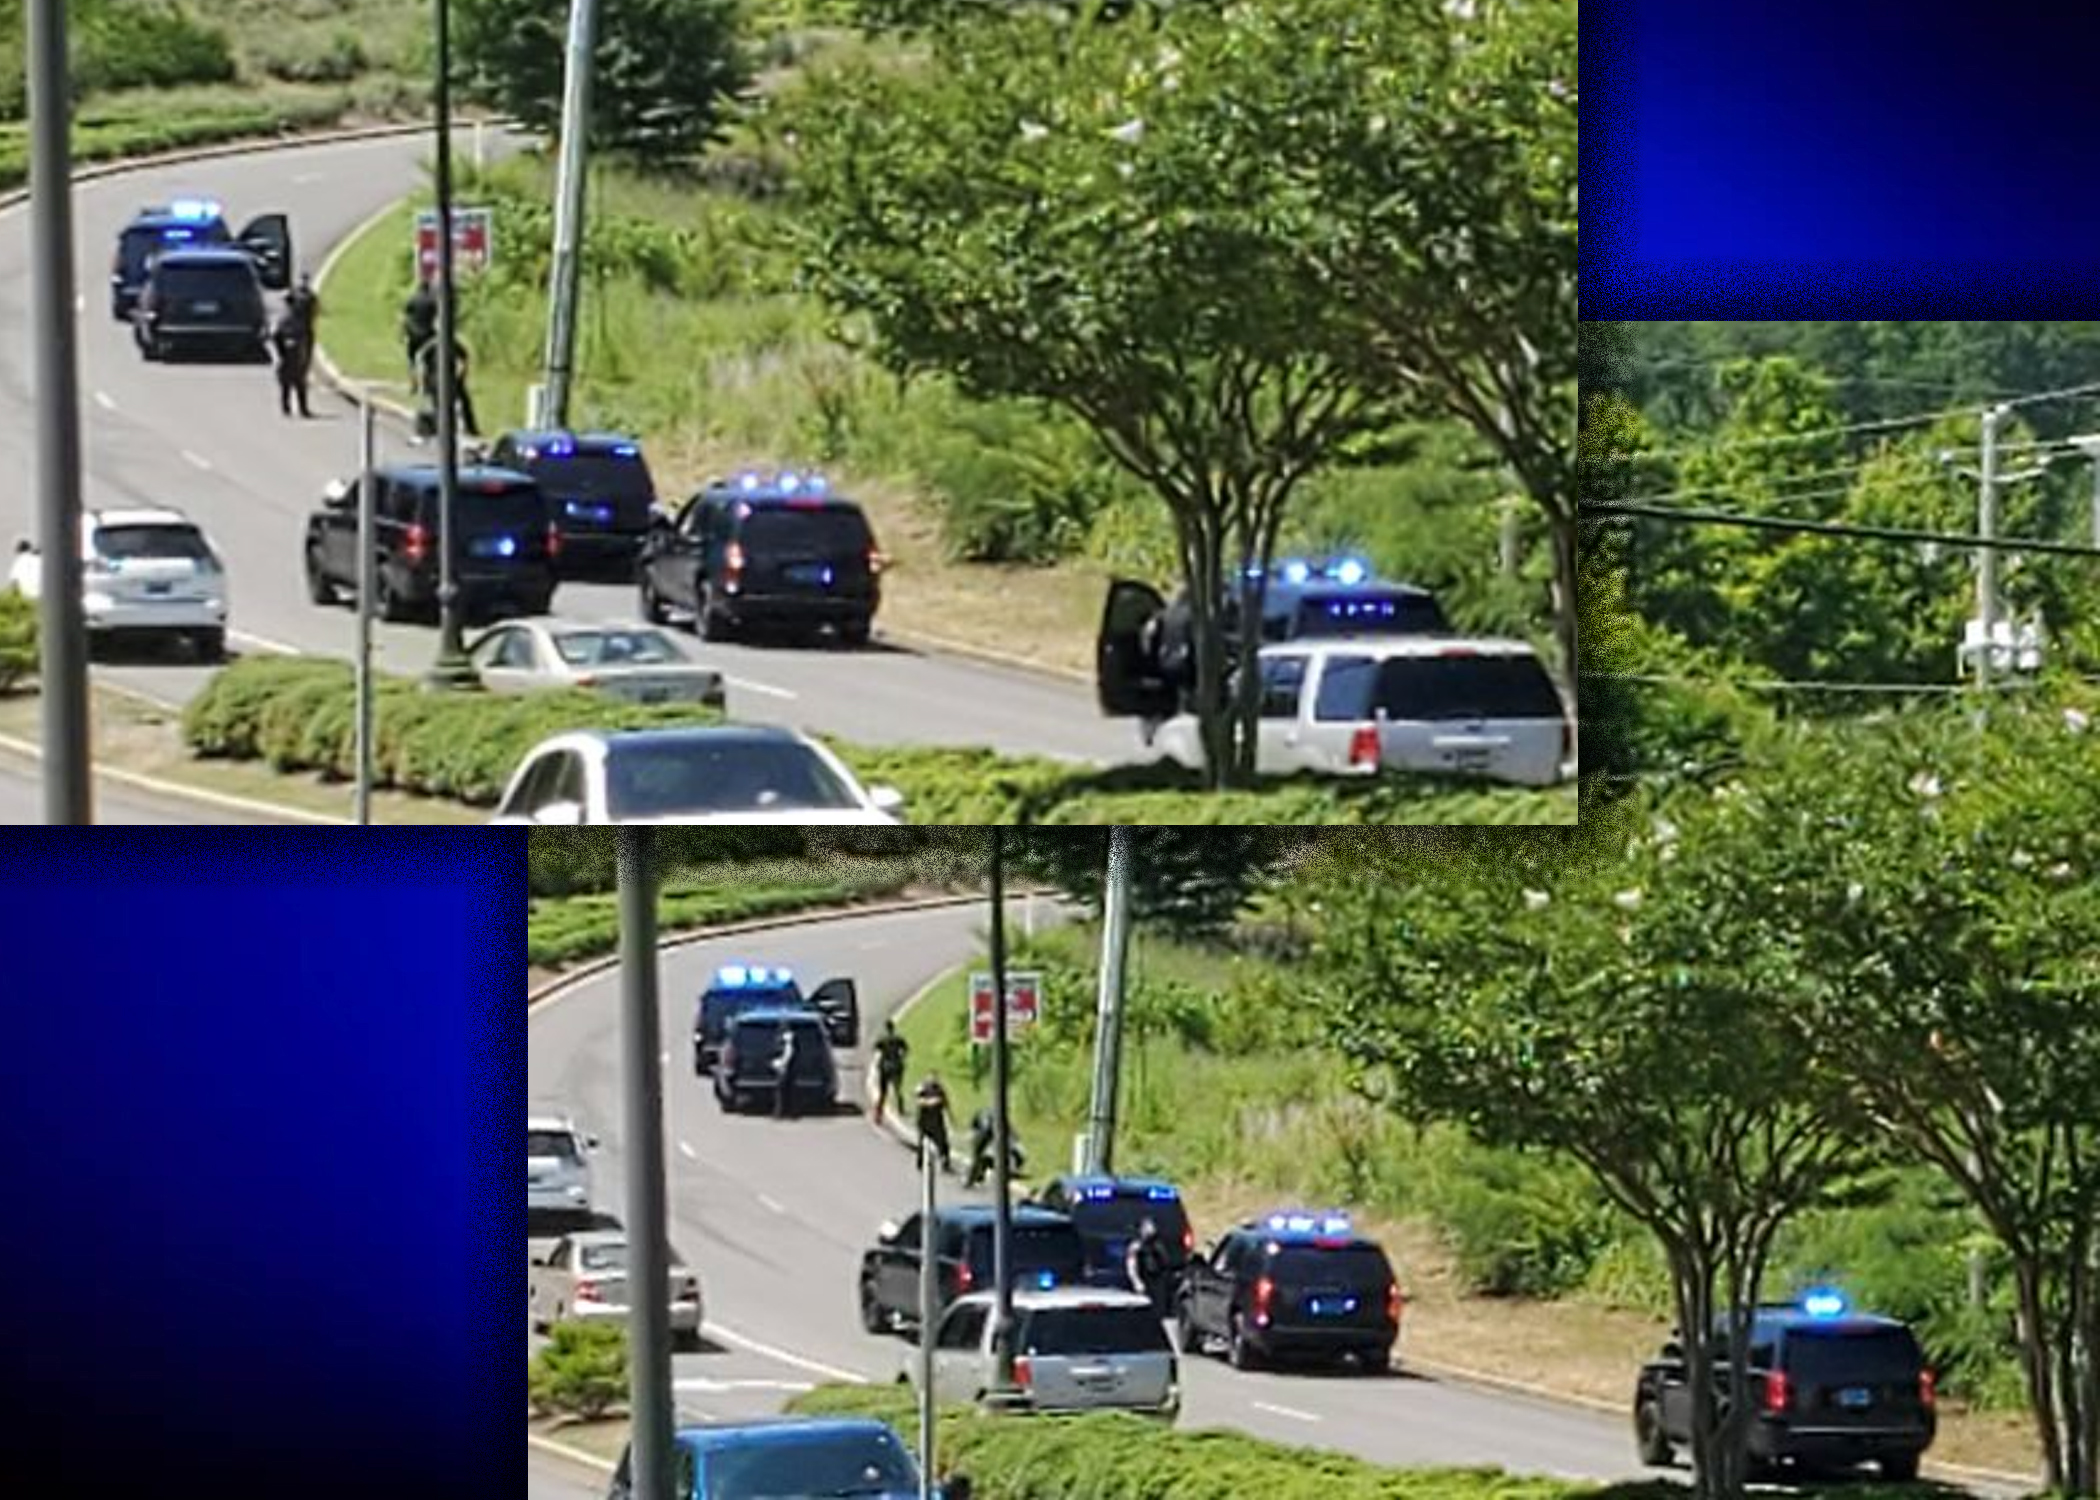 BREAKING: 1 in custody after police chase in Trussville